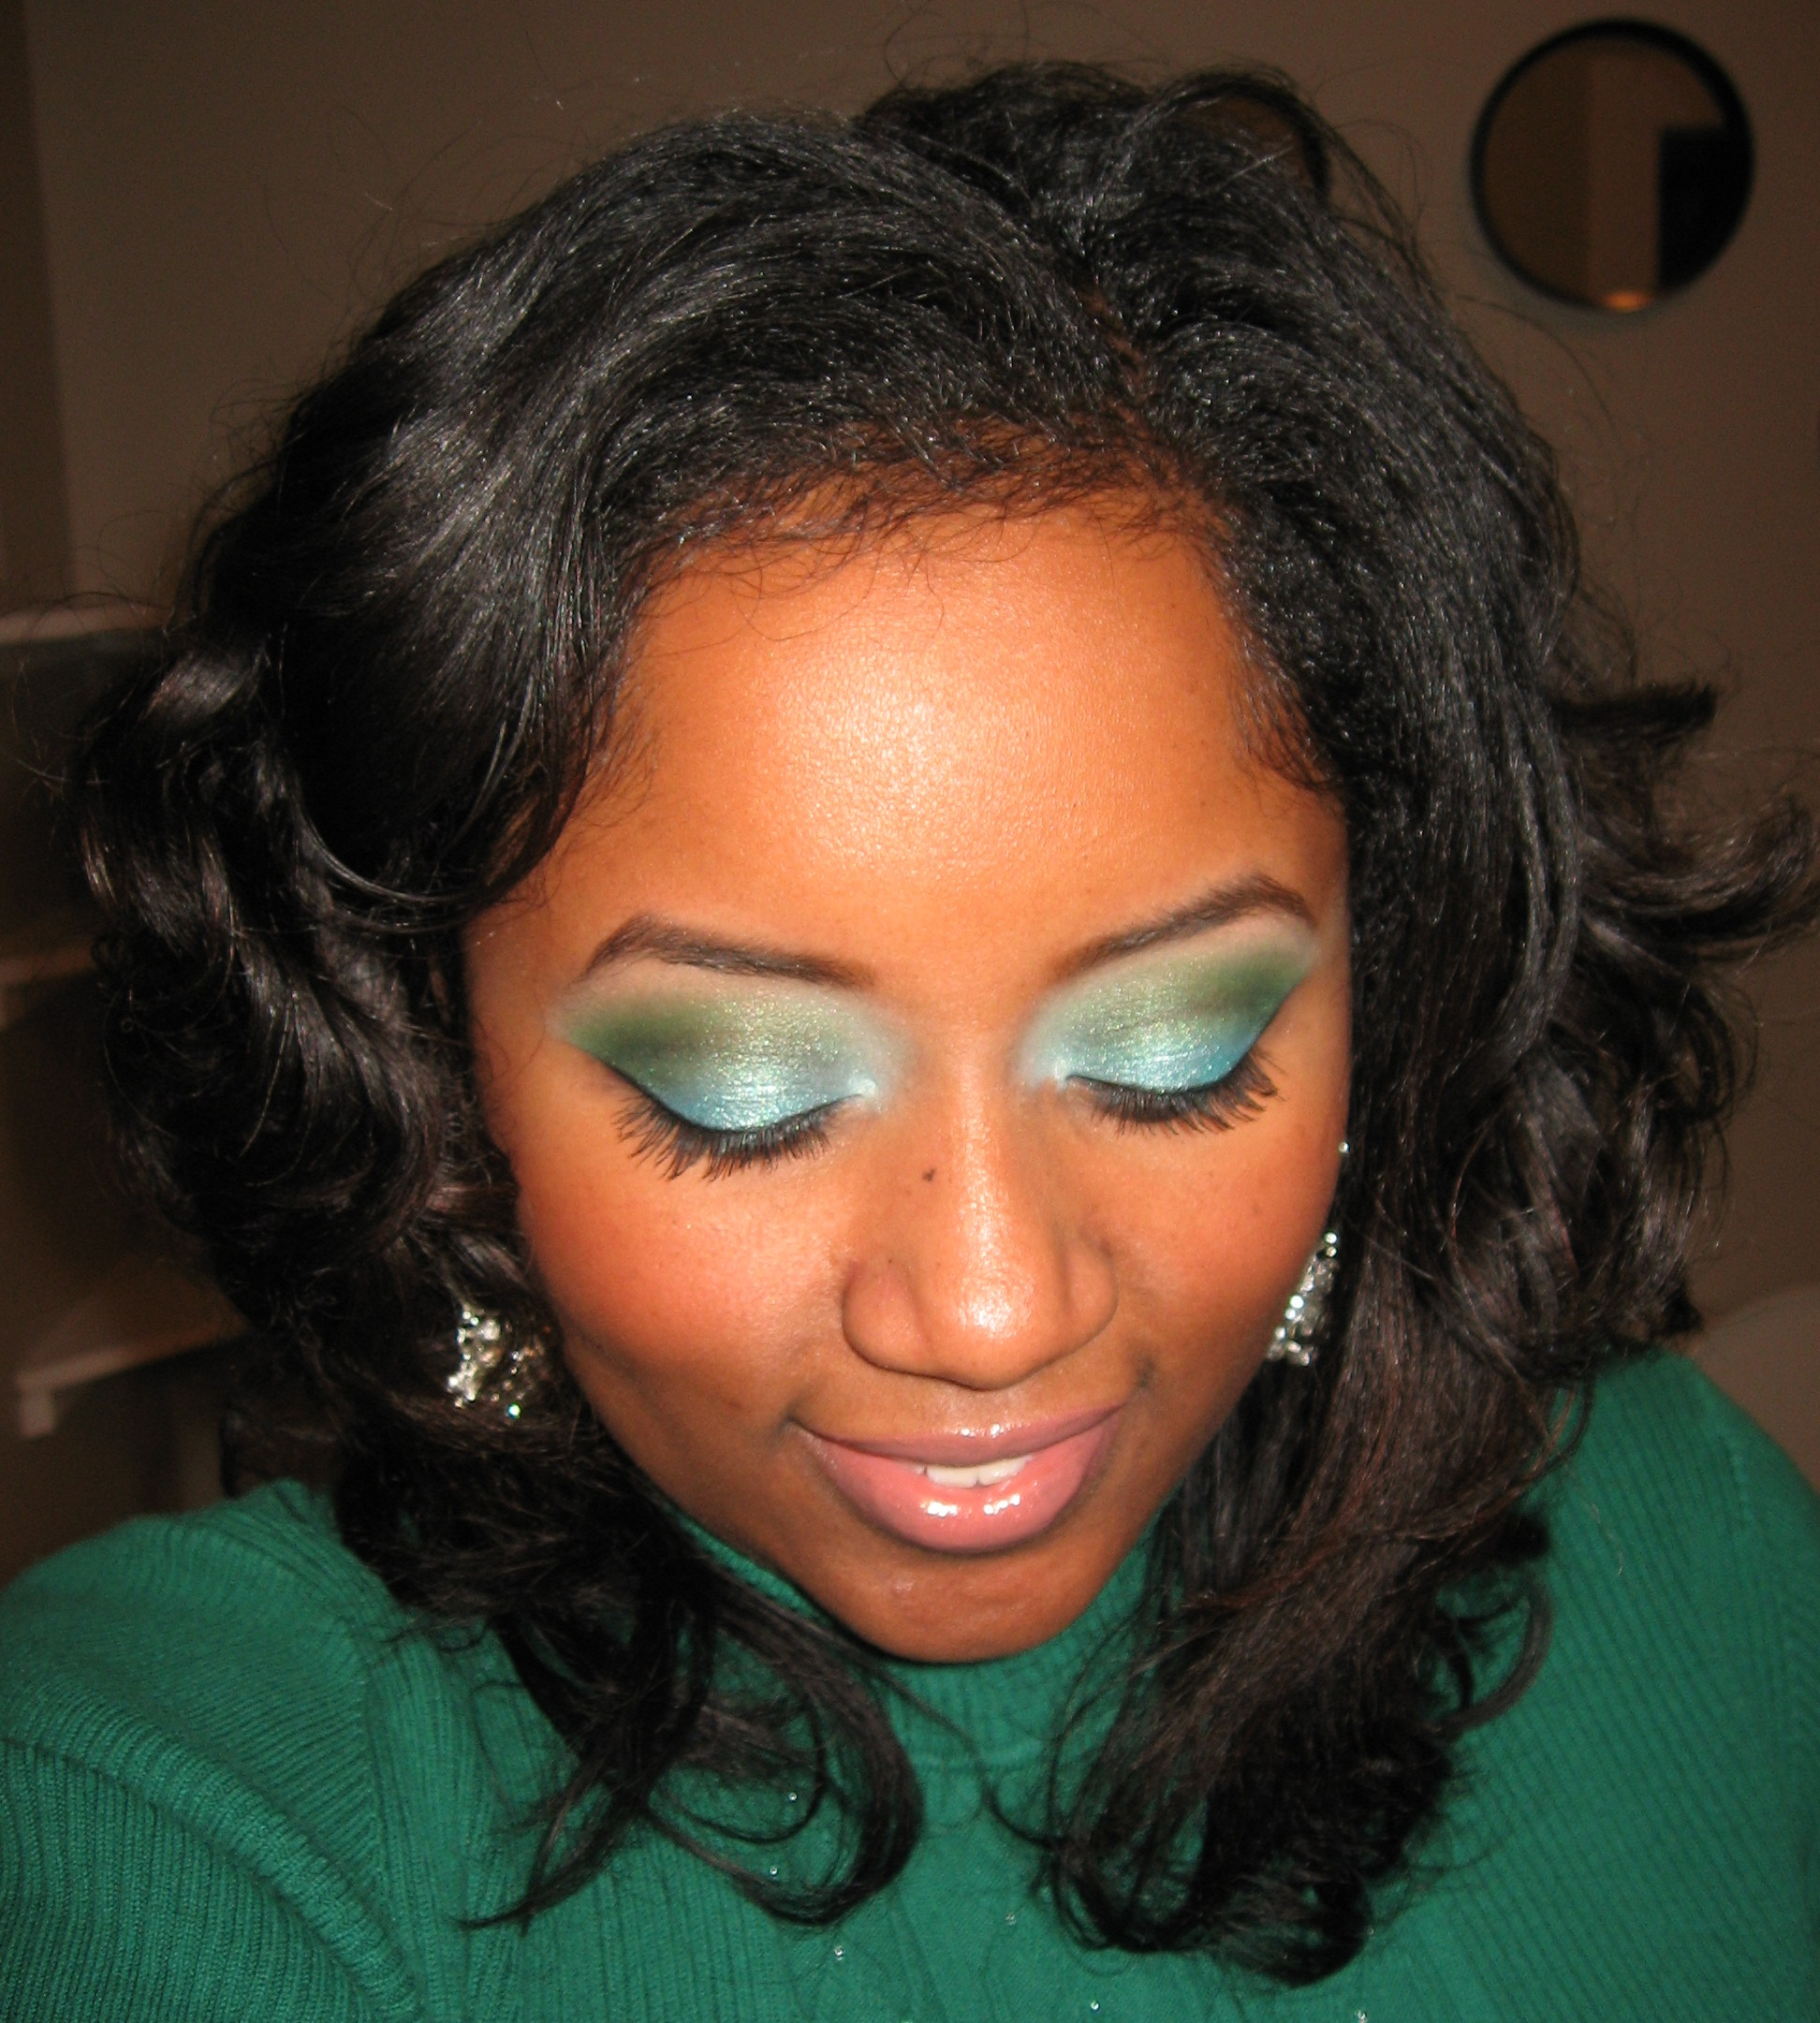 Black radiance makeup